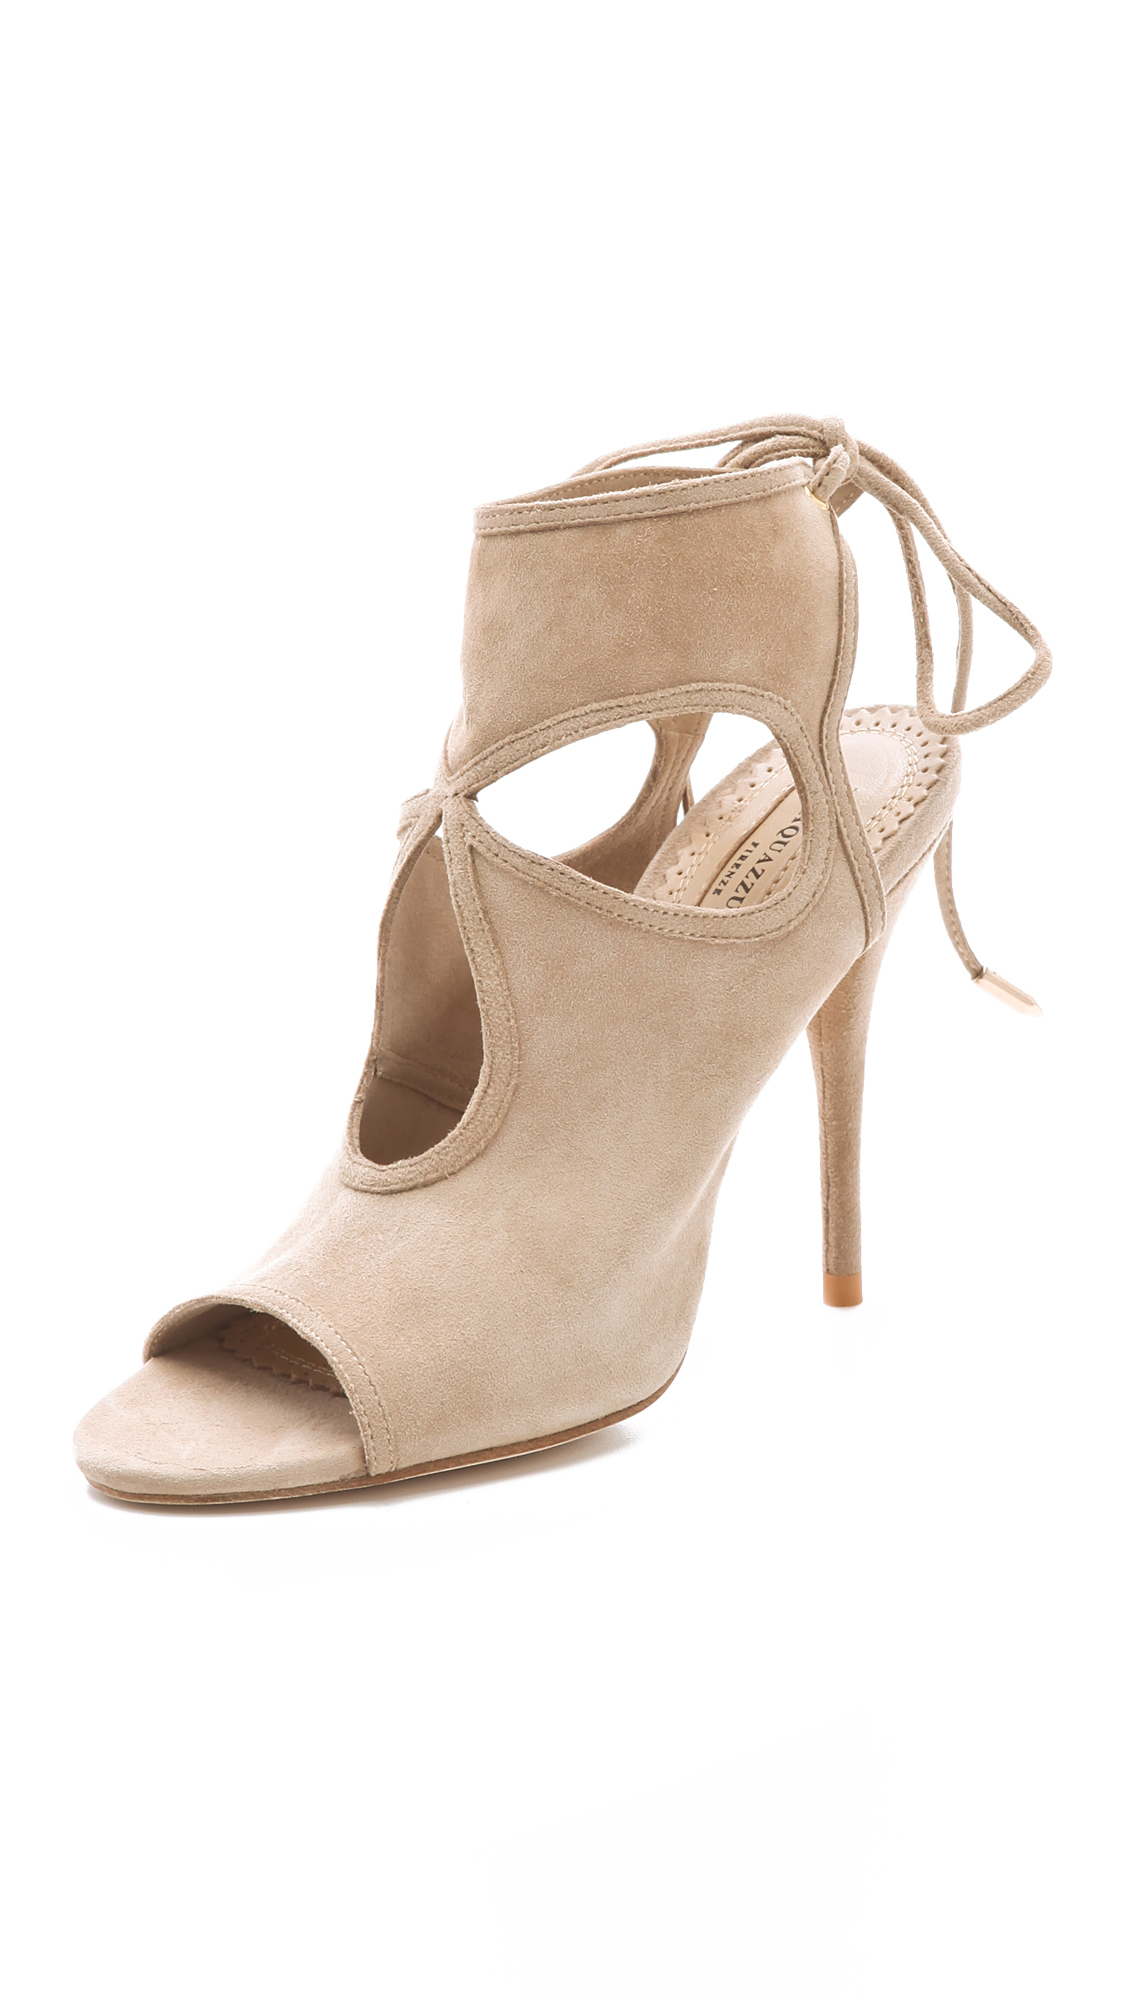 Sexy Thing Suede Cutout Sandals, Nude